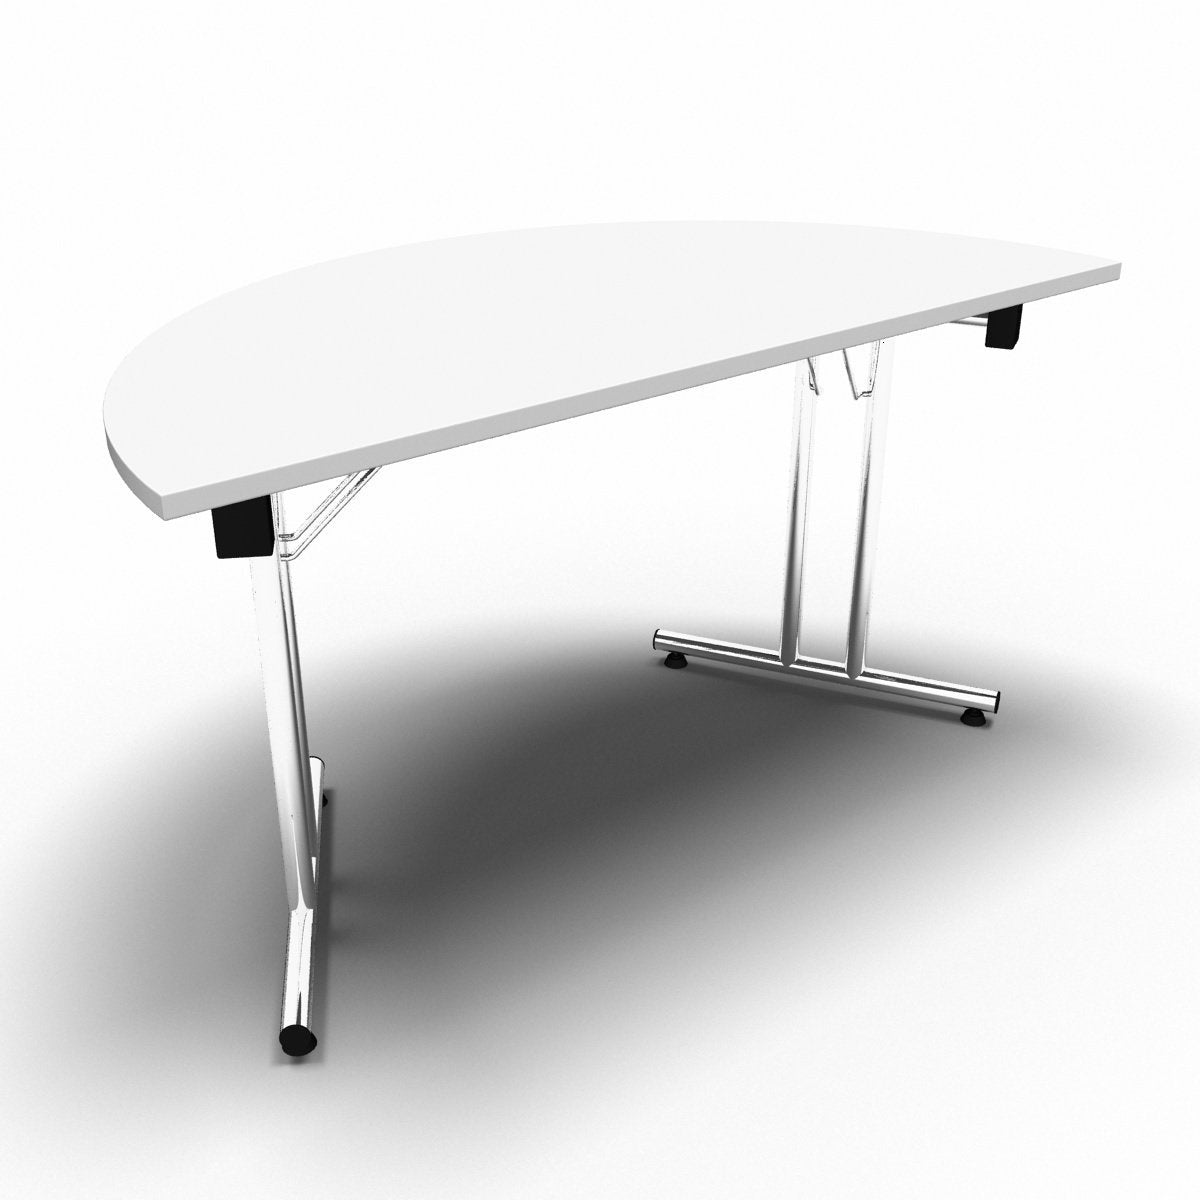 Table 1400 x 700 x 730mm / Semi Circular / White Synergy Folding Tables